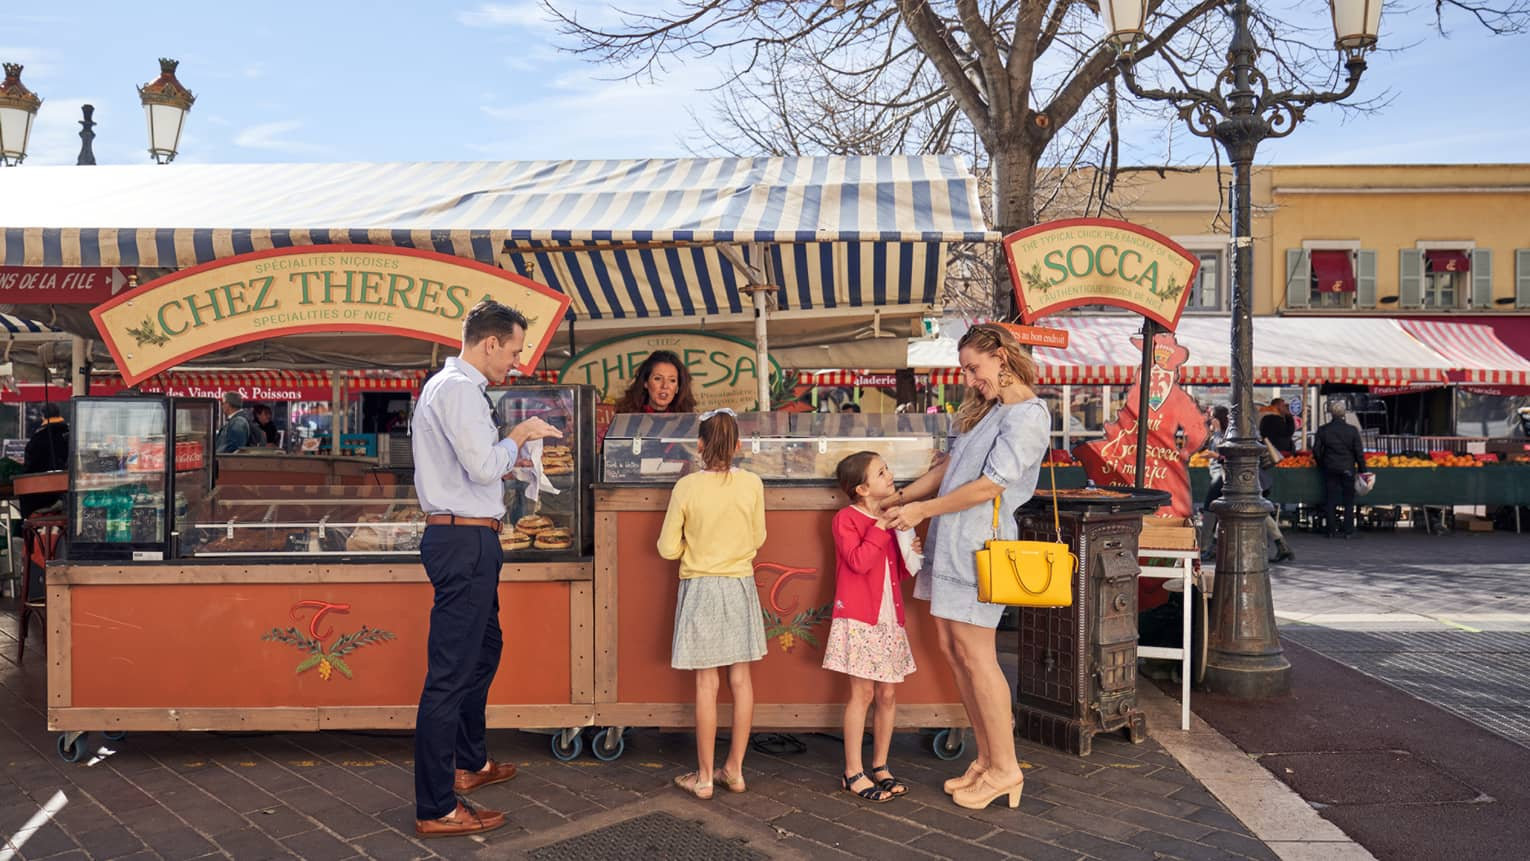 Man in blue shirt, black pants with two girls and woman in dresses at market farm stand)